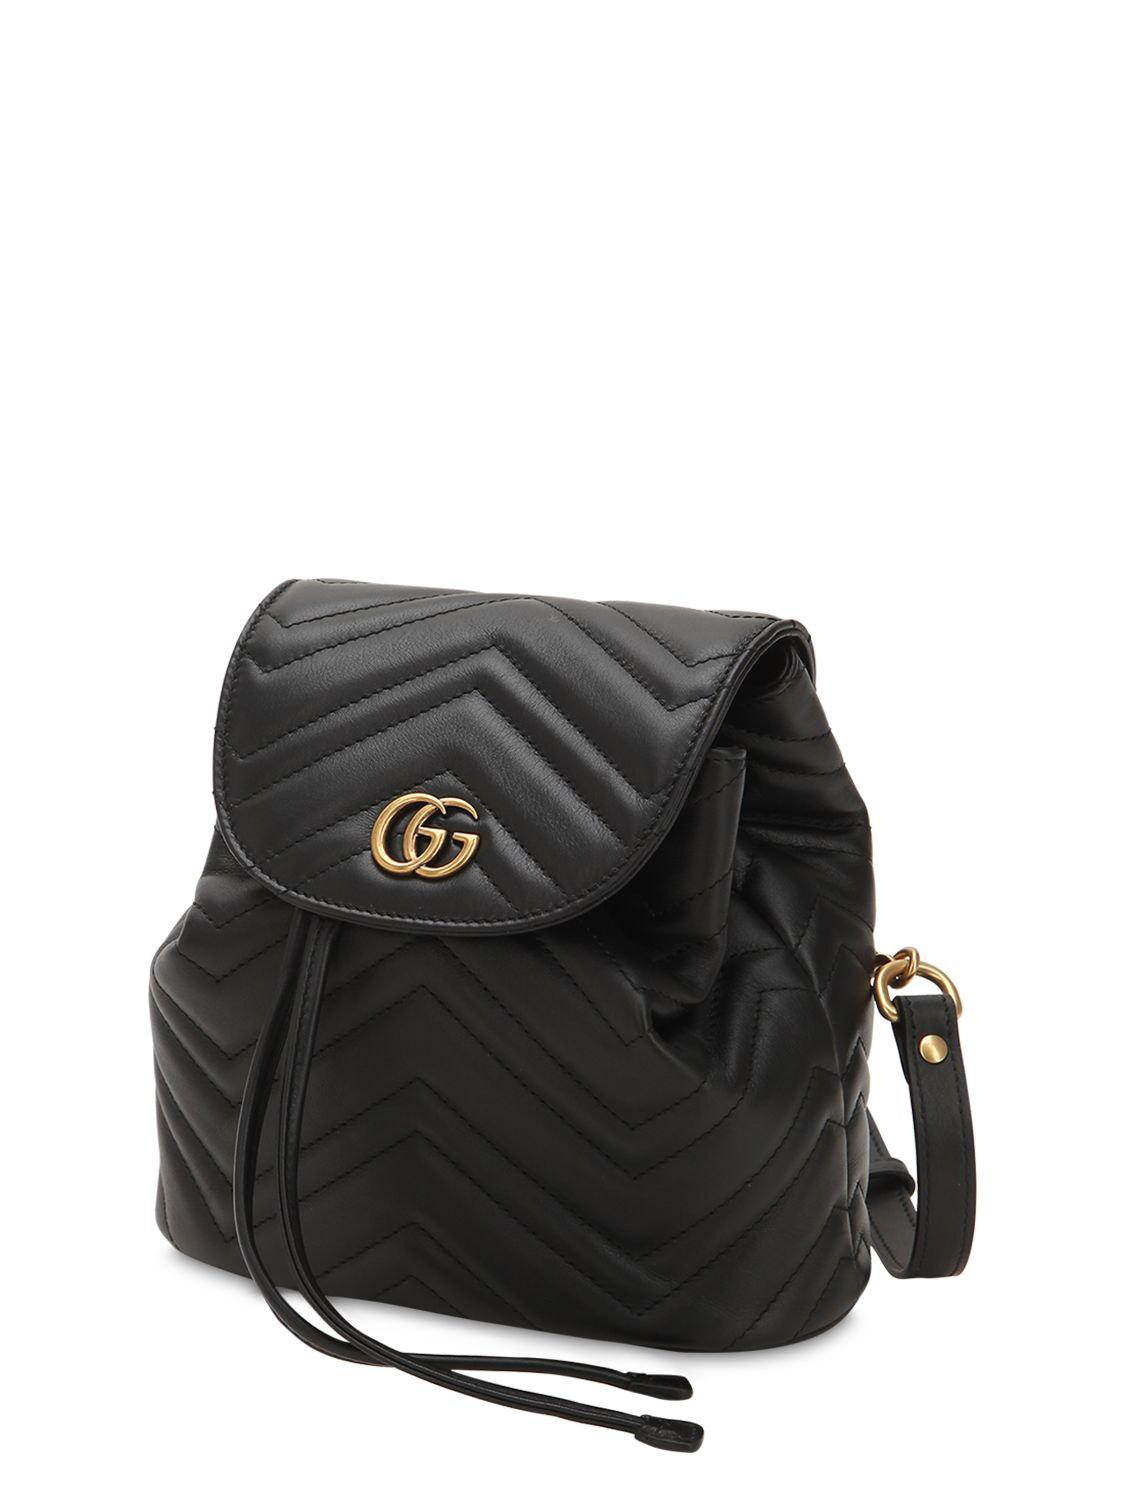 52d4c3104 Gucci Mini Gg Marmont Leather Backpack in Black - Save 7% - Lyst